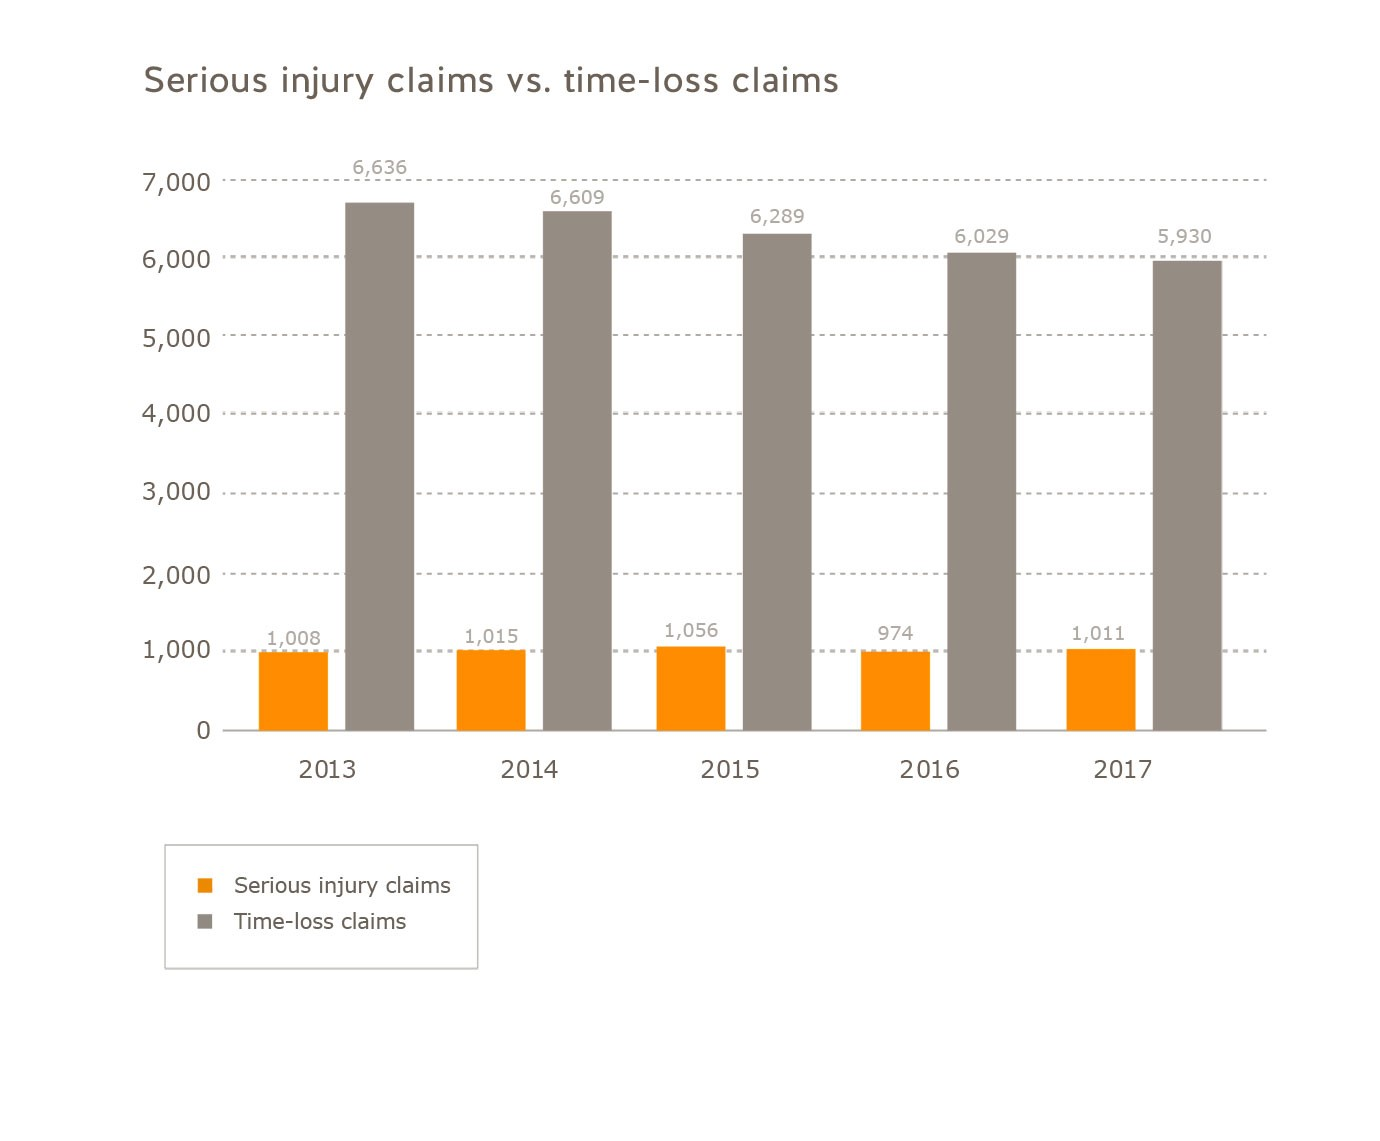 Number of serious injury claims vs. time-loss claims manufacturing sector 2013 to 2017. Number of serious injury claims: 2013 = 1,008, 2014 = 1,015, 2015 = 2,056, 2016 = 974, 2017 = 1,011. Number of time-loss claims: 2013 = 6,636, 2014 = 6,609, 2015 = 6,289, 2016 = 6,029, 2017 = 5,930.